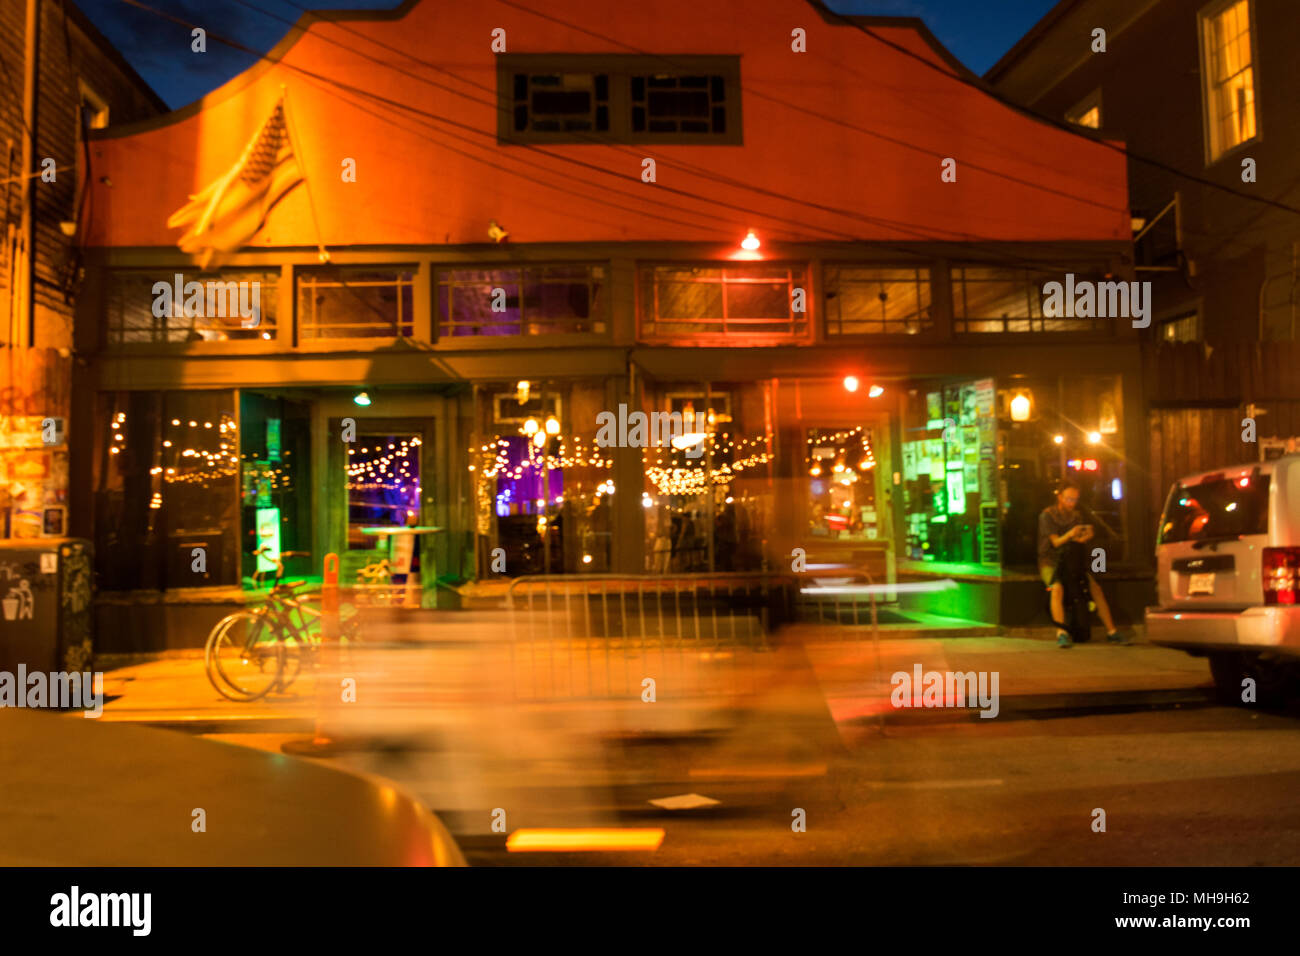 Frenchman Street, New Orleans at night. - Stock Image